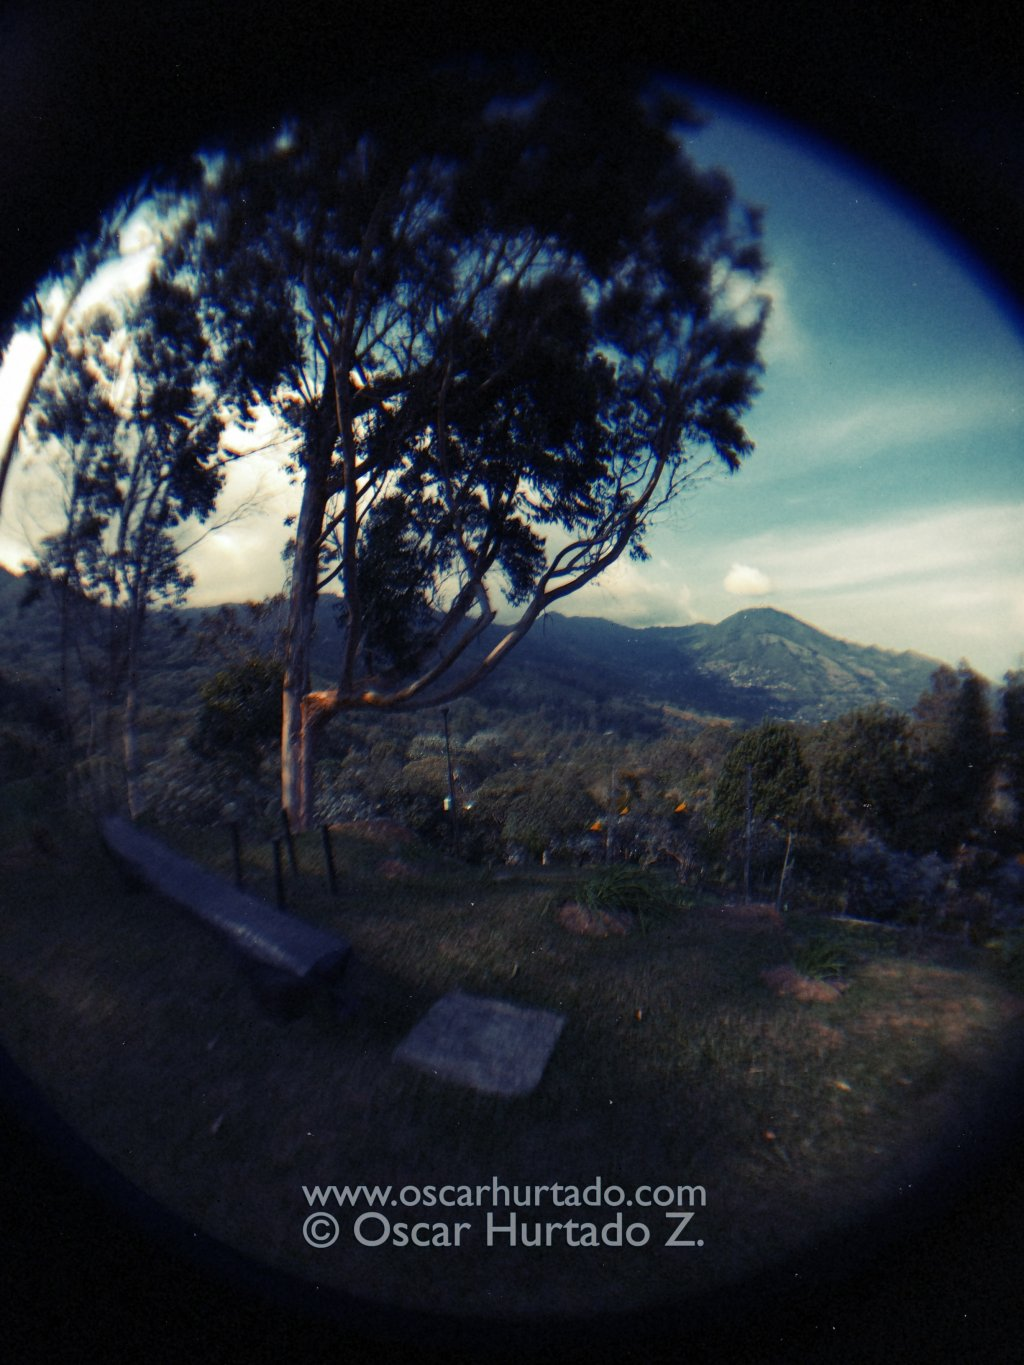 Distorted Nature - Fish-eye color photograph (2014)